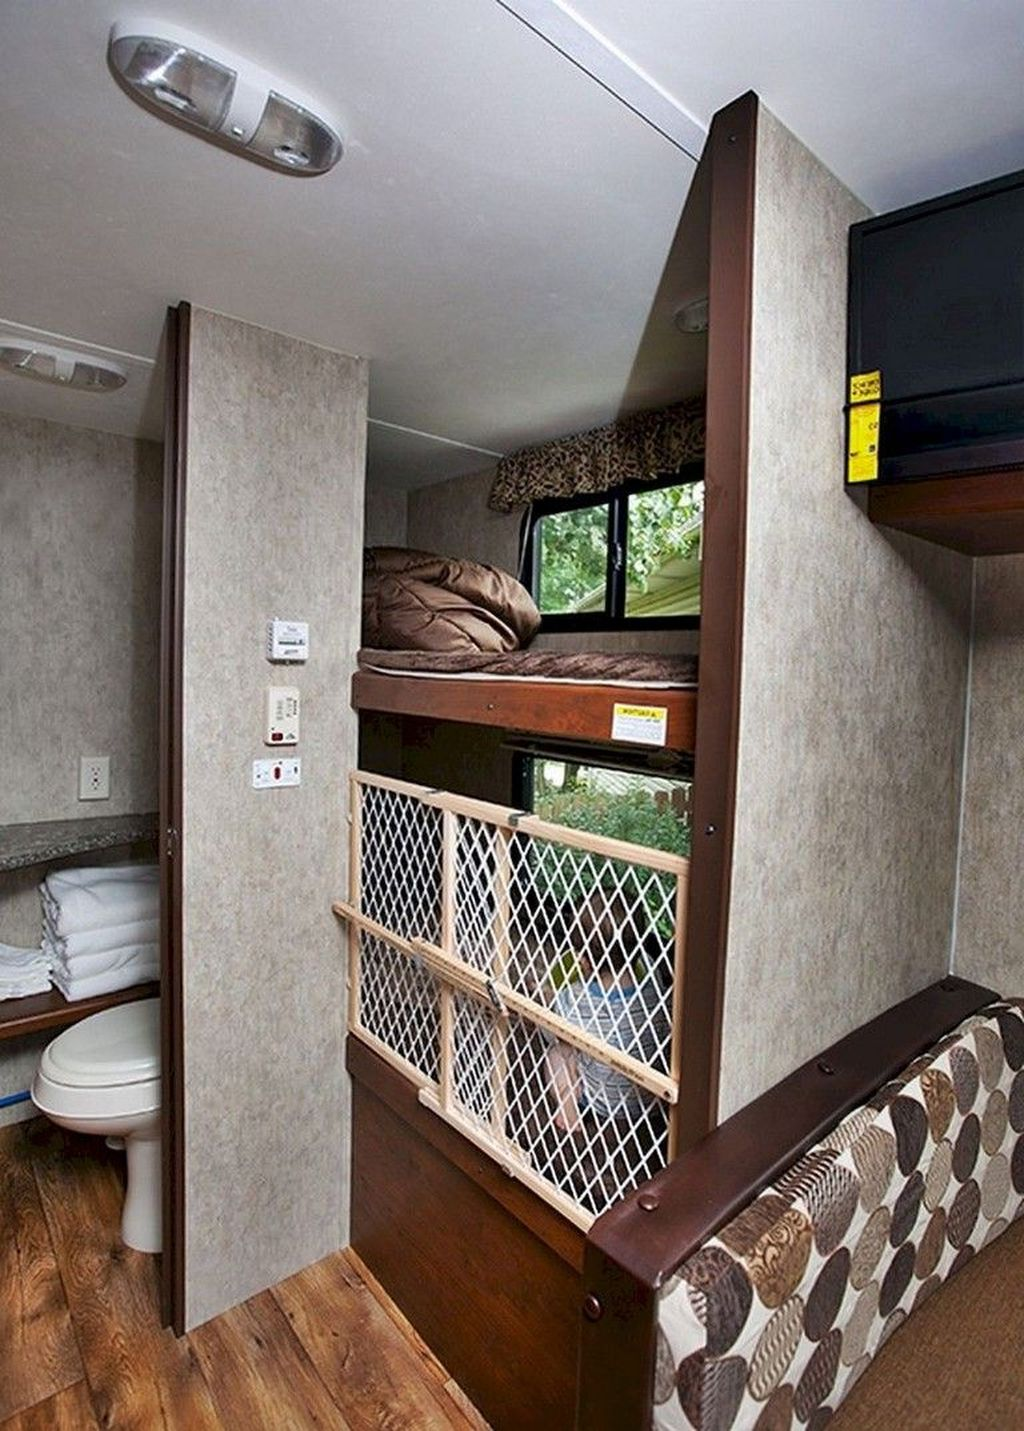 Inspiring RV Storage Ideas Travel Trailers 25